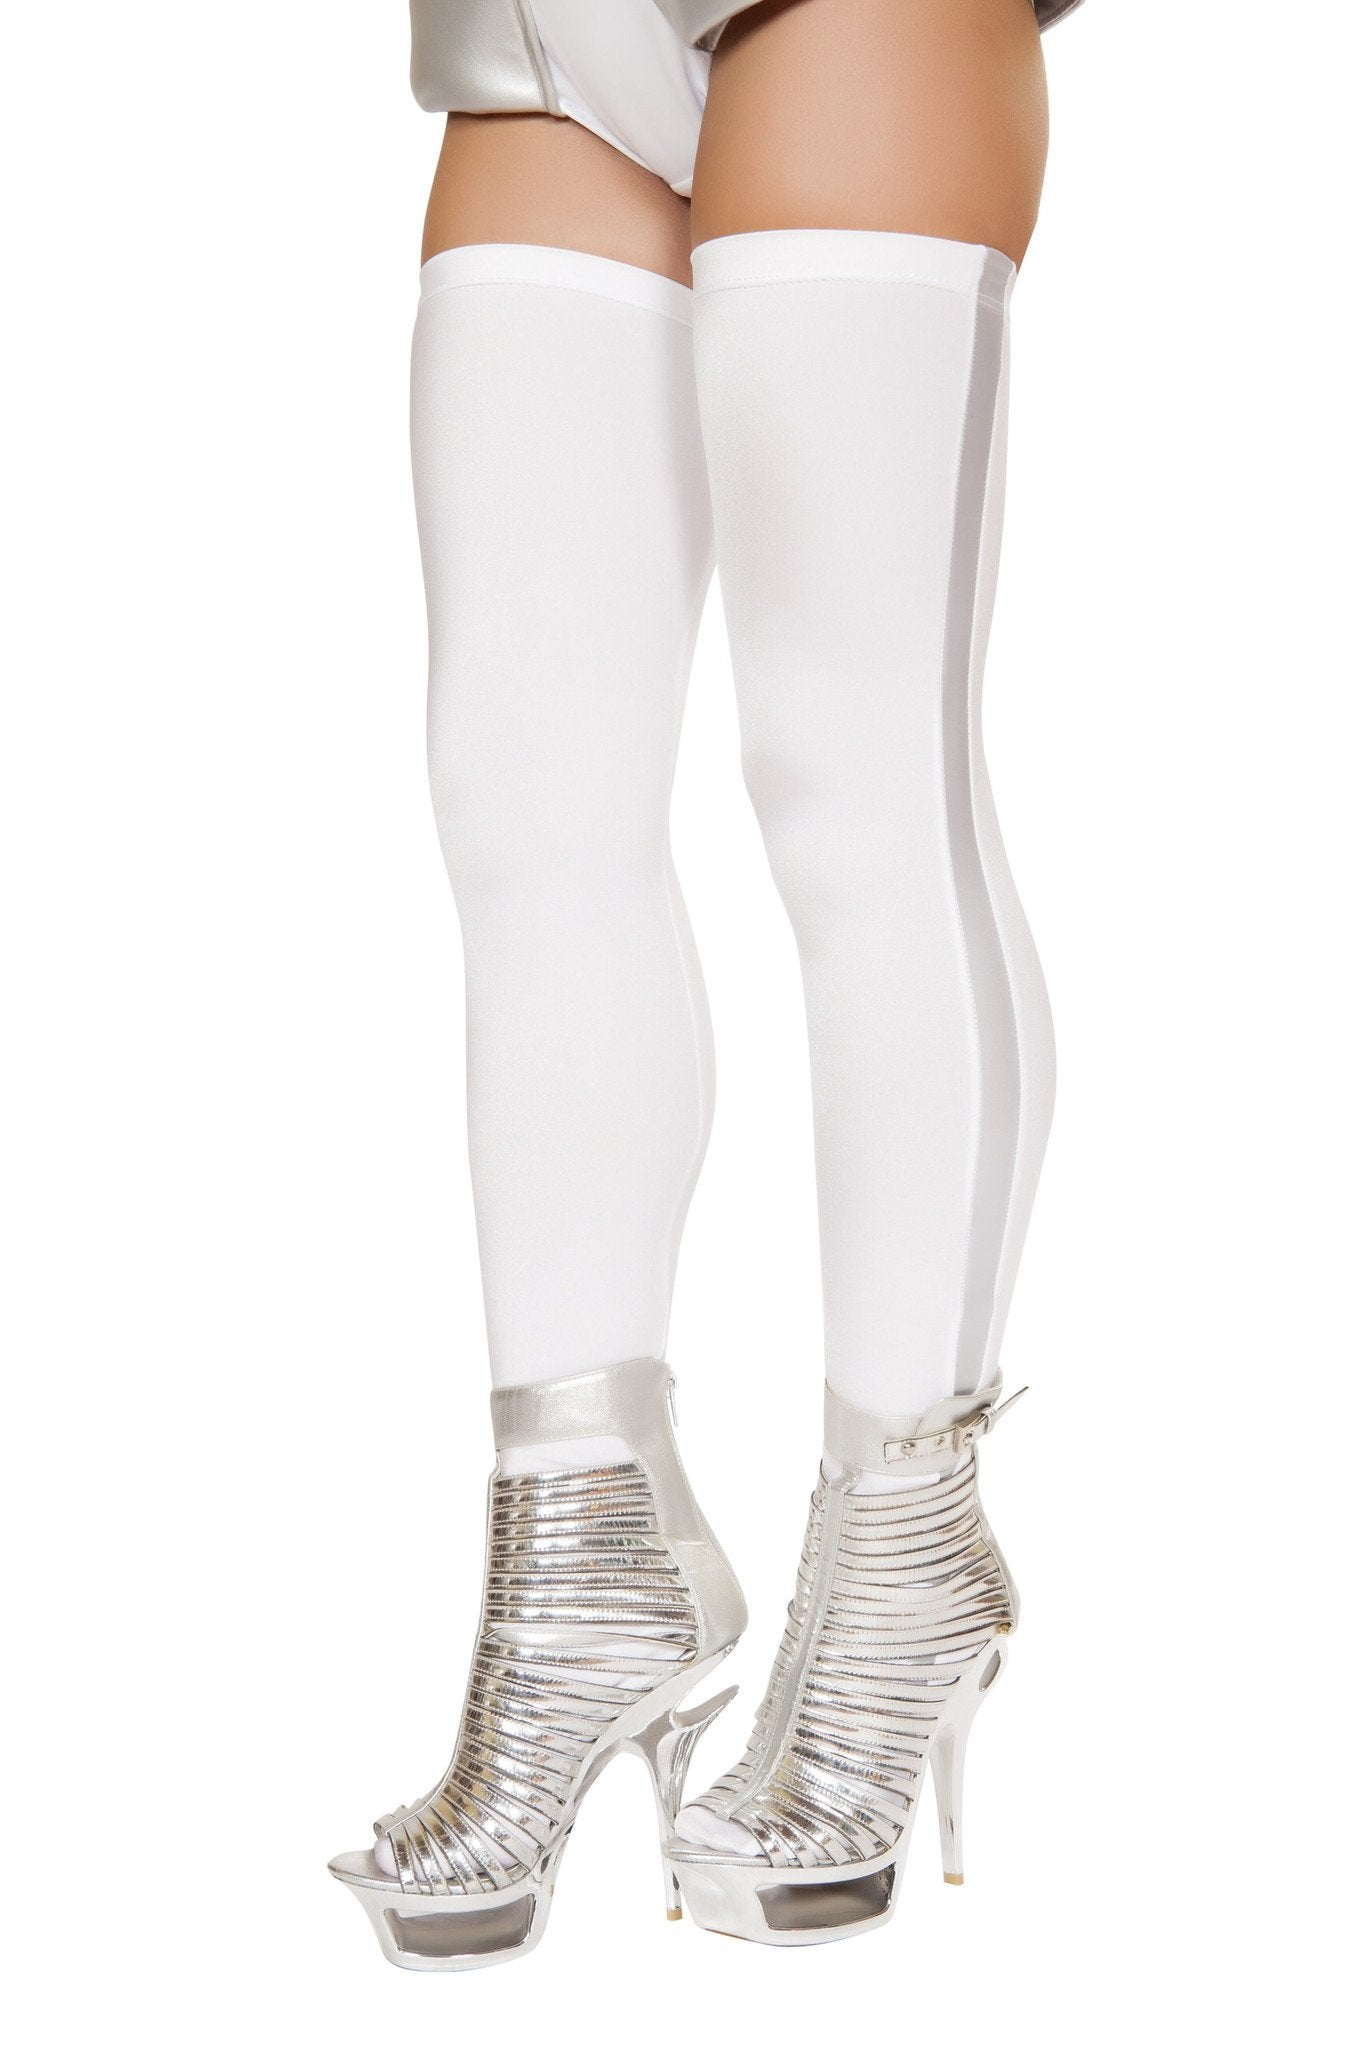 Buy ST4736 - Astronaut Leggings from Rave Fix for $15.00 with Same Day Shipping Designed by Roma Costume ST4736-AS-O/S